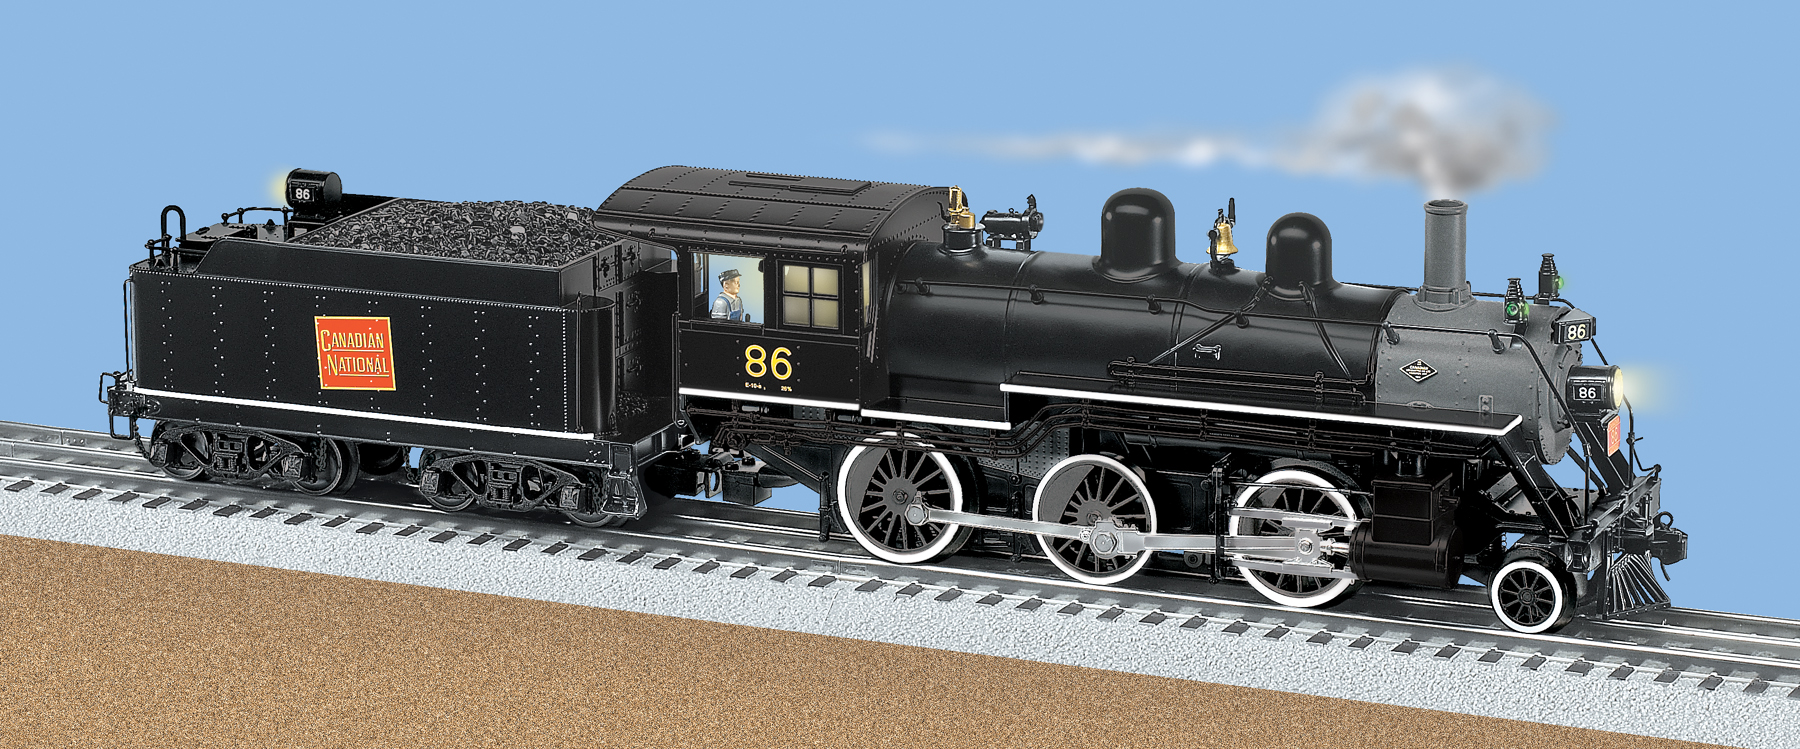 hight resolution of canadian national tmcc scale 2 6 0 mogul steam locomotive 86 ho track wiring lionel trainmaster wiring